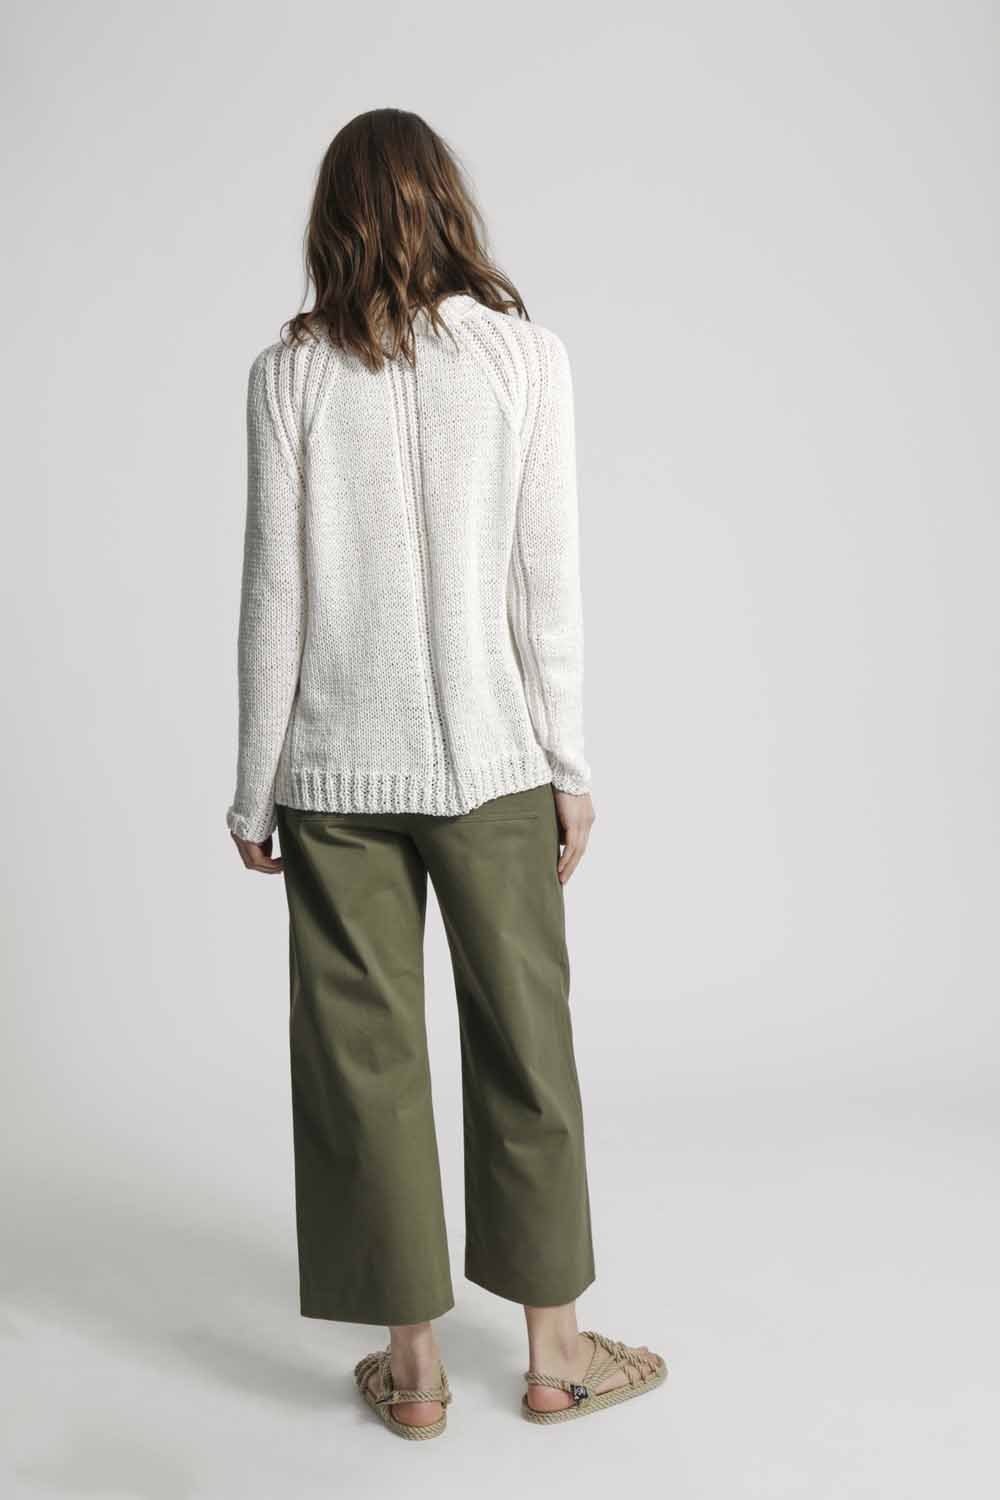 White sweater by Wool and the Gang | Design Hunter